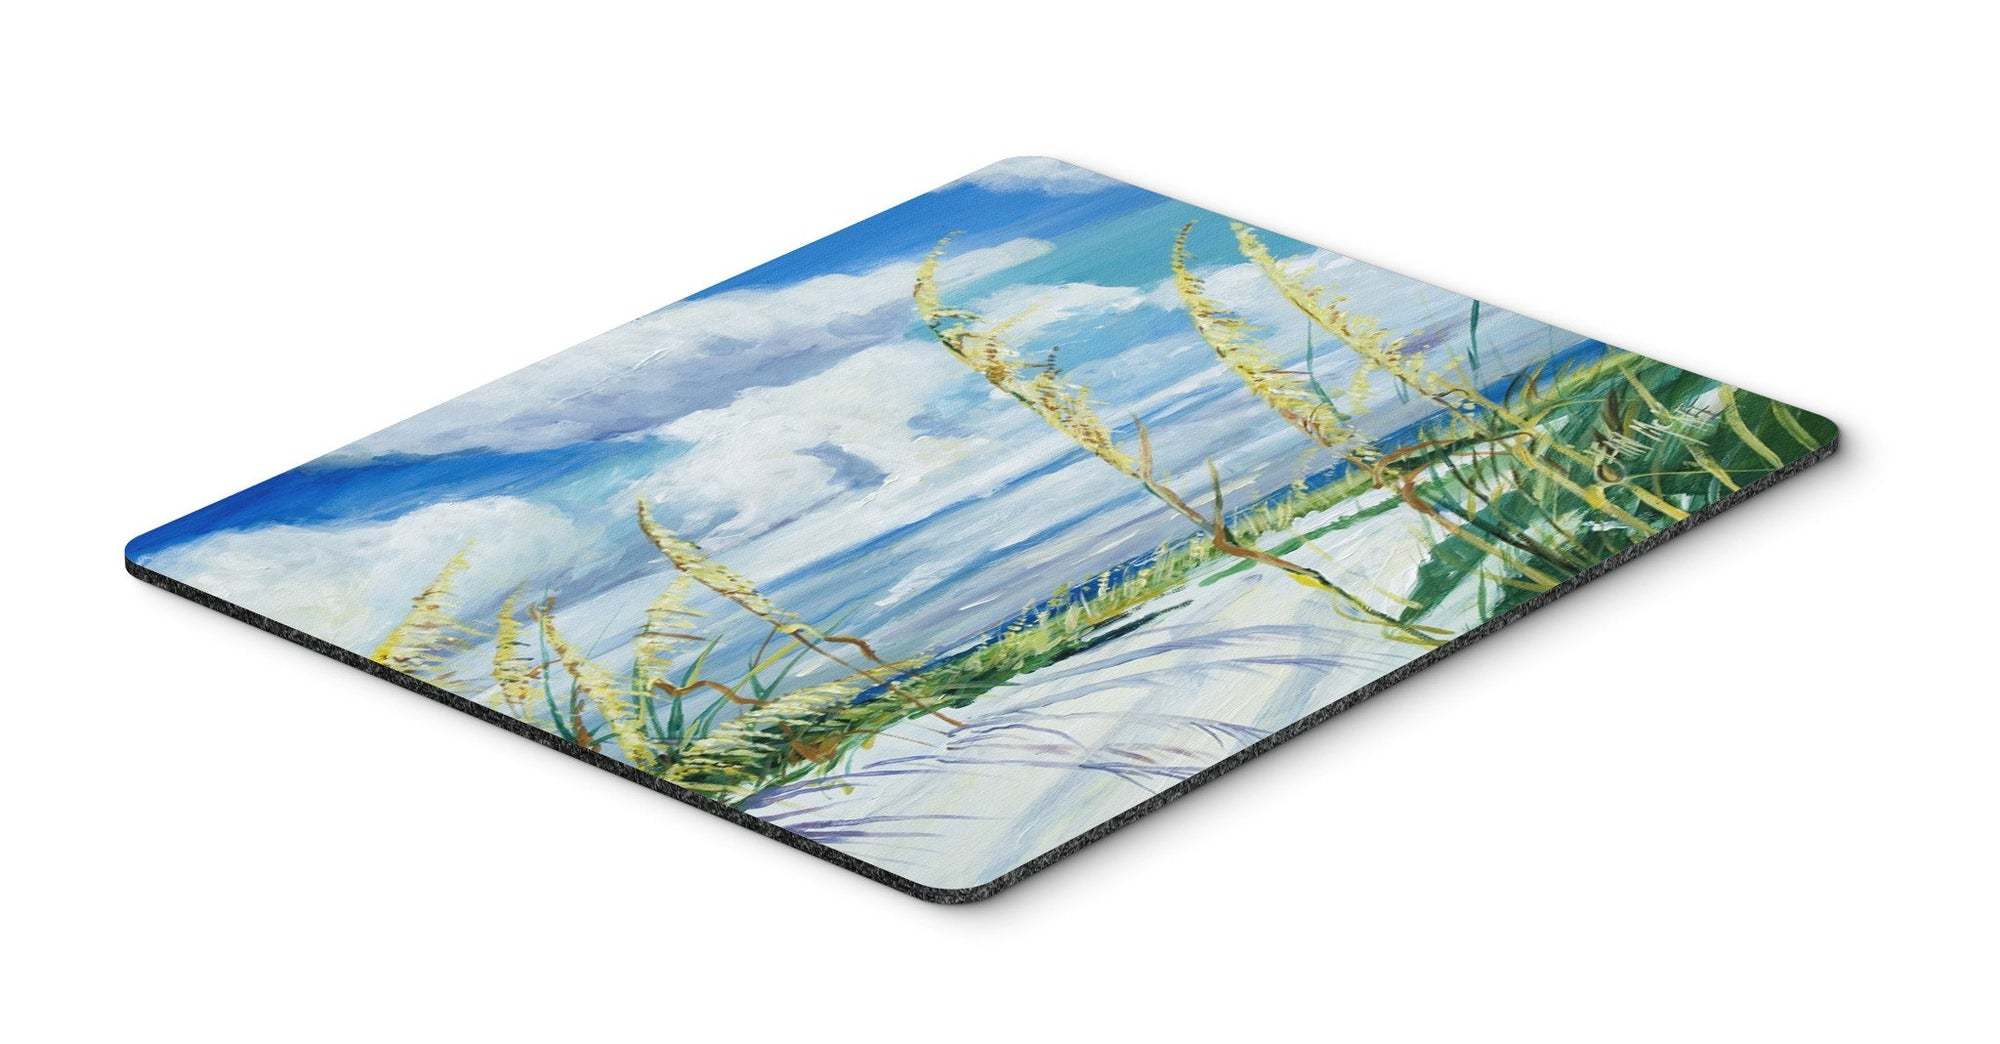 Sea Oats Mouse Pad, Hot Pad or Trivet JMK1123MP by Caroline's Treasures